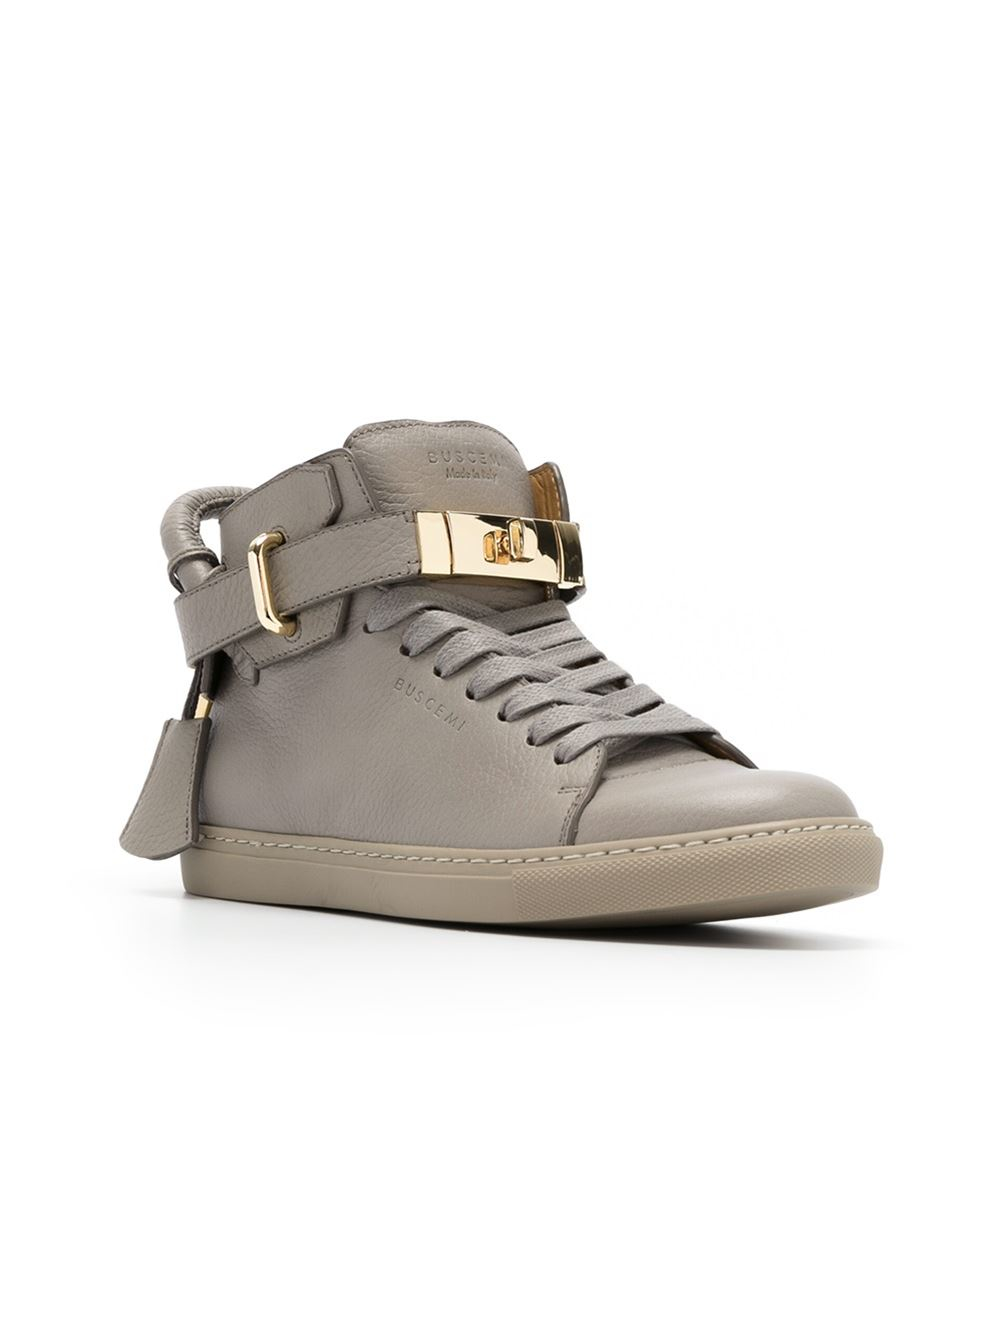 Discounts For Sale BUSCEMI Leather Trainers Cheap Sale Best Sale Free Shipping Browse riSr9eP